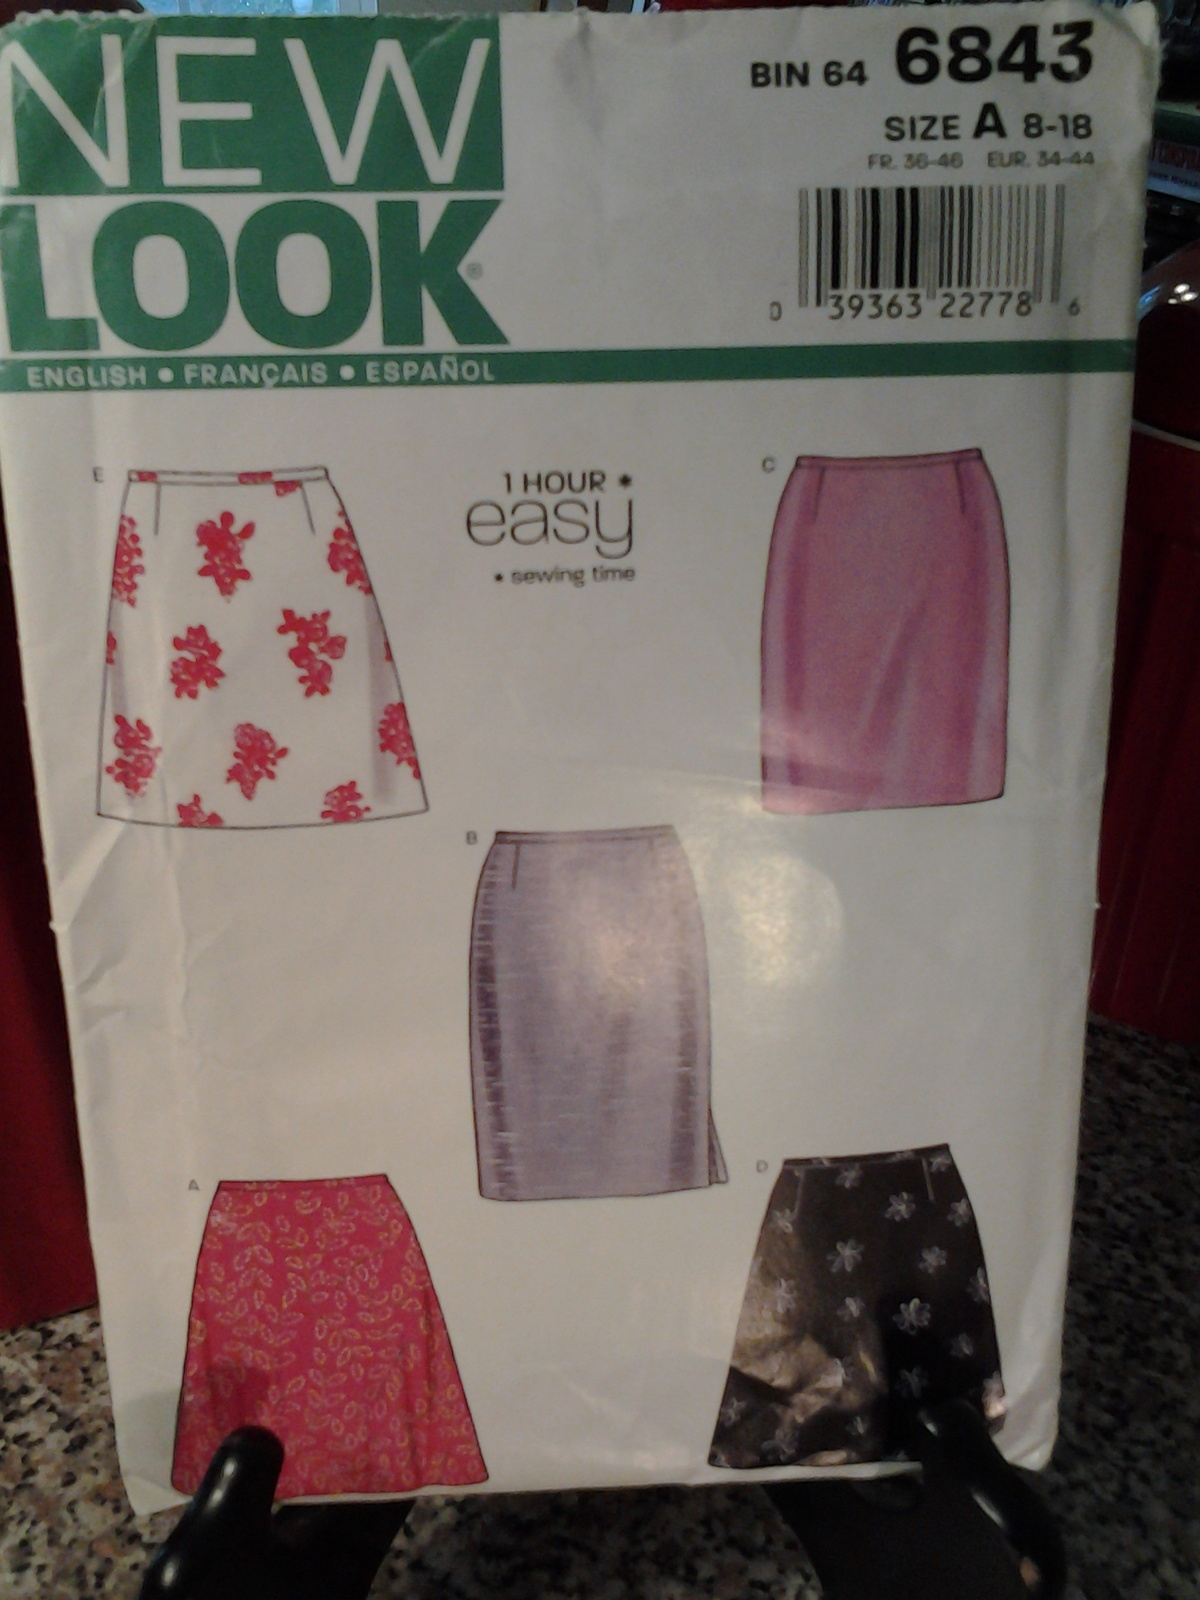 New Look 6843 Misses Skirts 1 hr easy sewing time